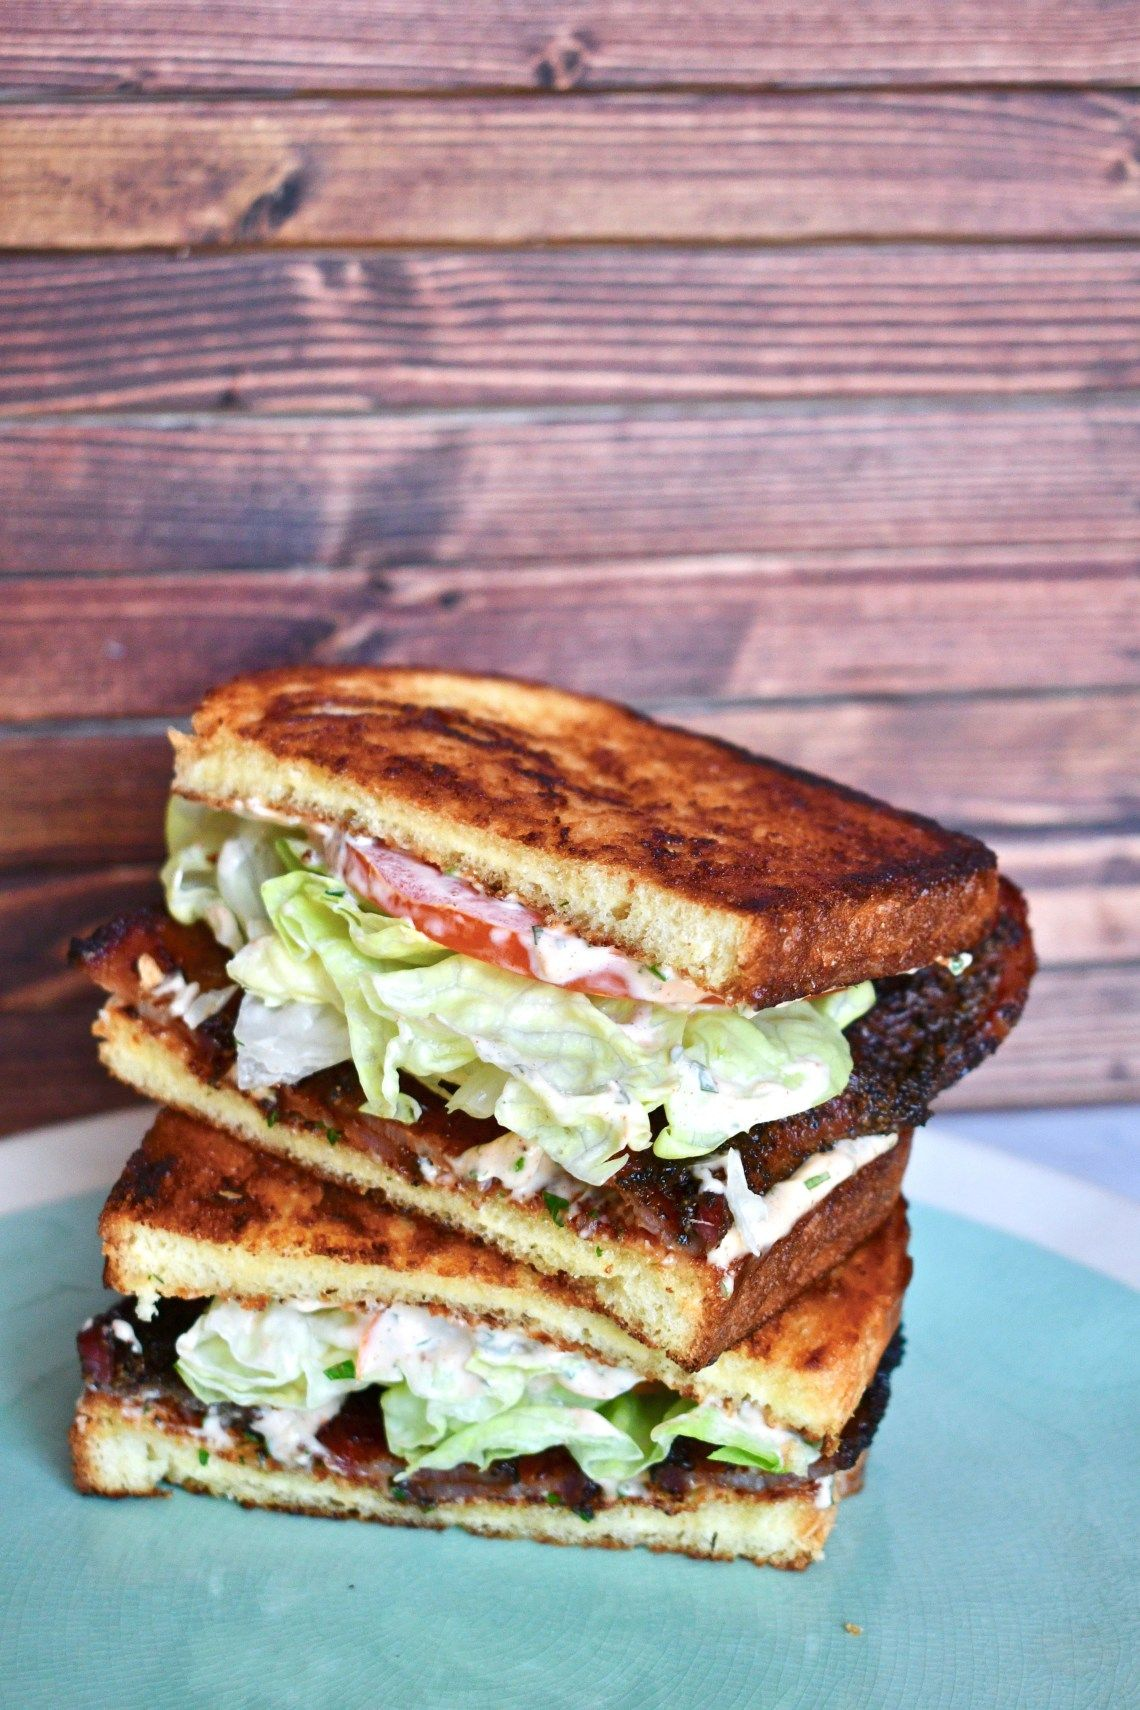 Blt Sandwiches And Easy Herb Mayo A Winning Combination Kendellkreations Blt Sandwich Sandwiches Cookbook Recipes